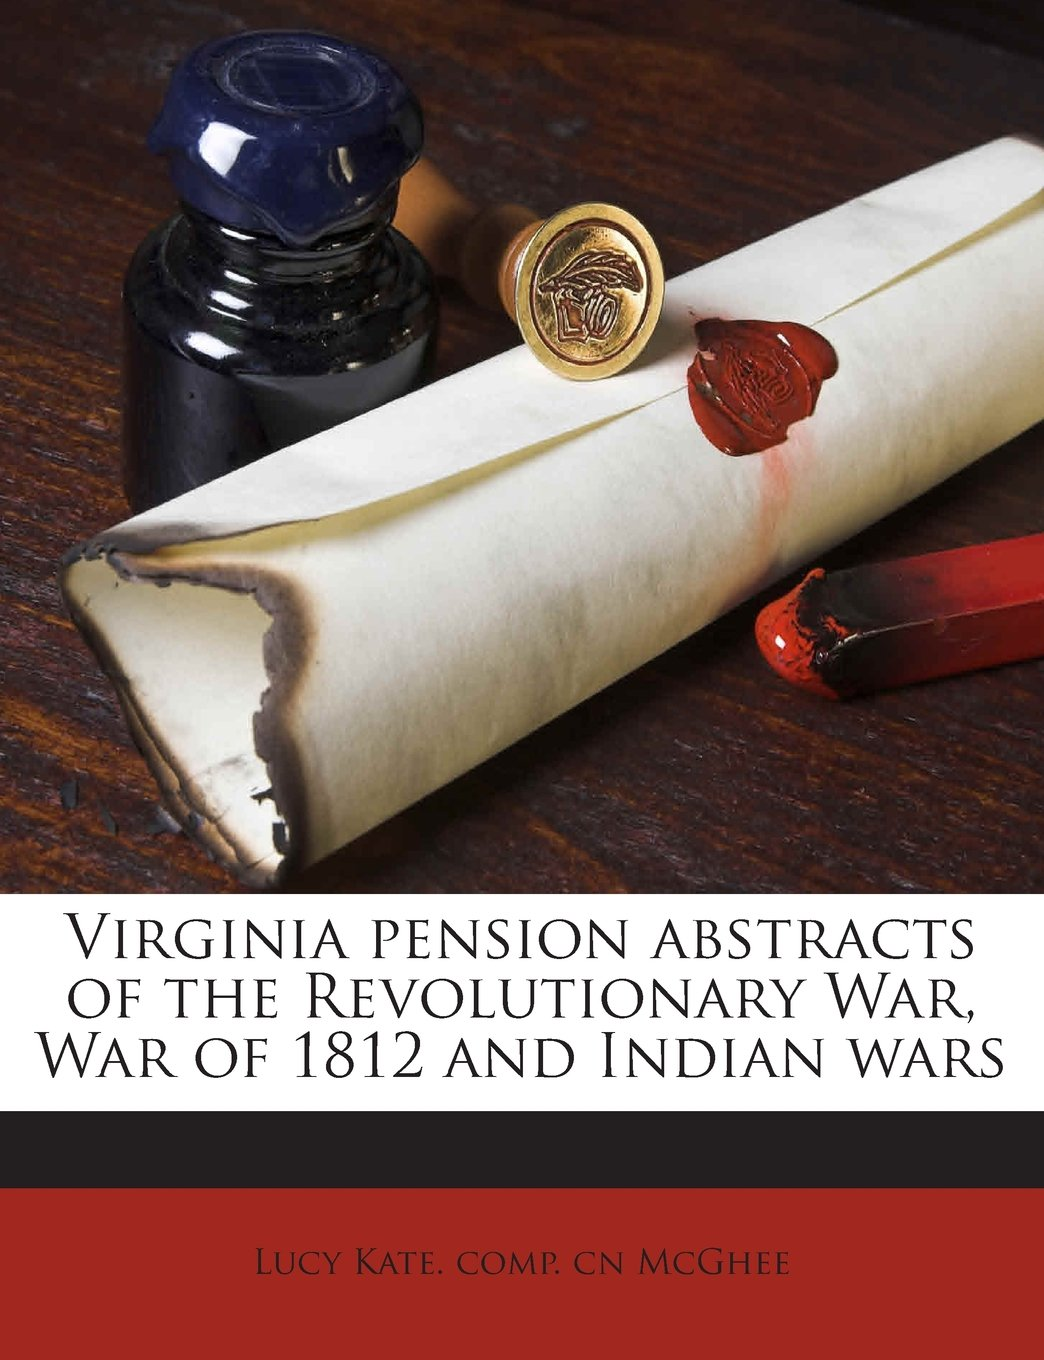 Download Virginia pension abstracts of the Revolutionary War, War of 1812 and Indian wars PDF